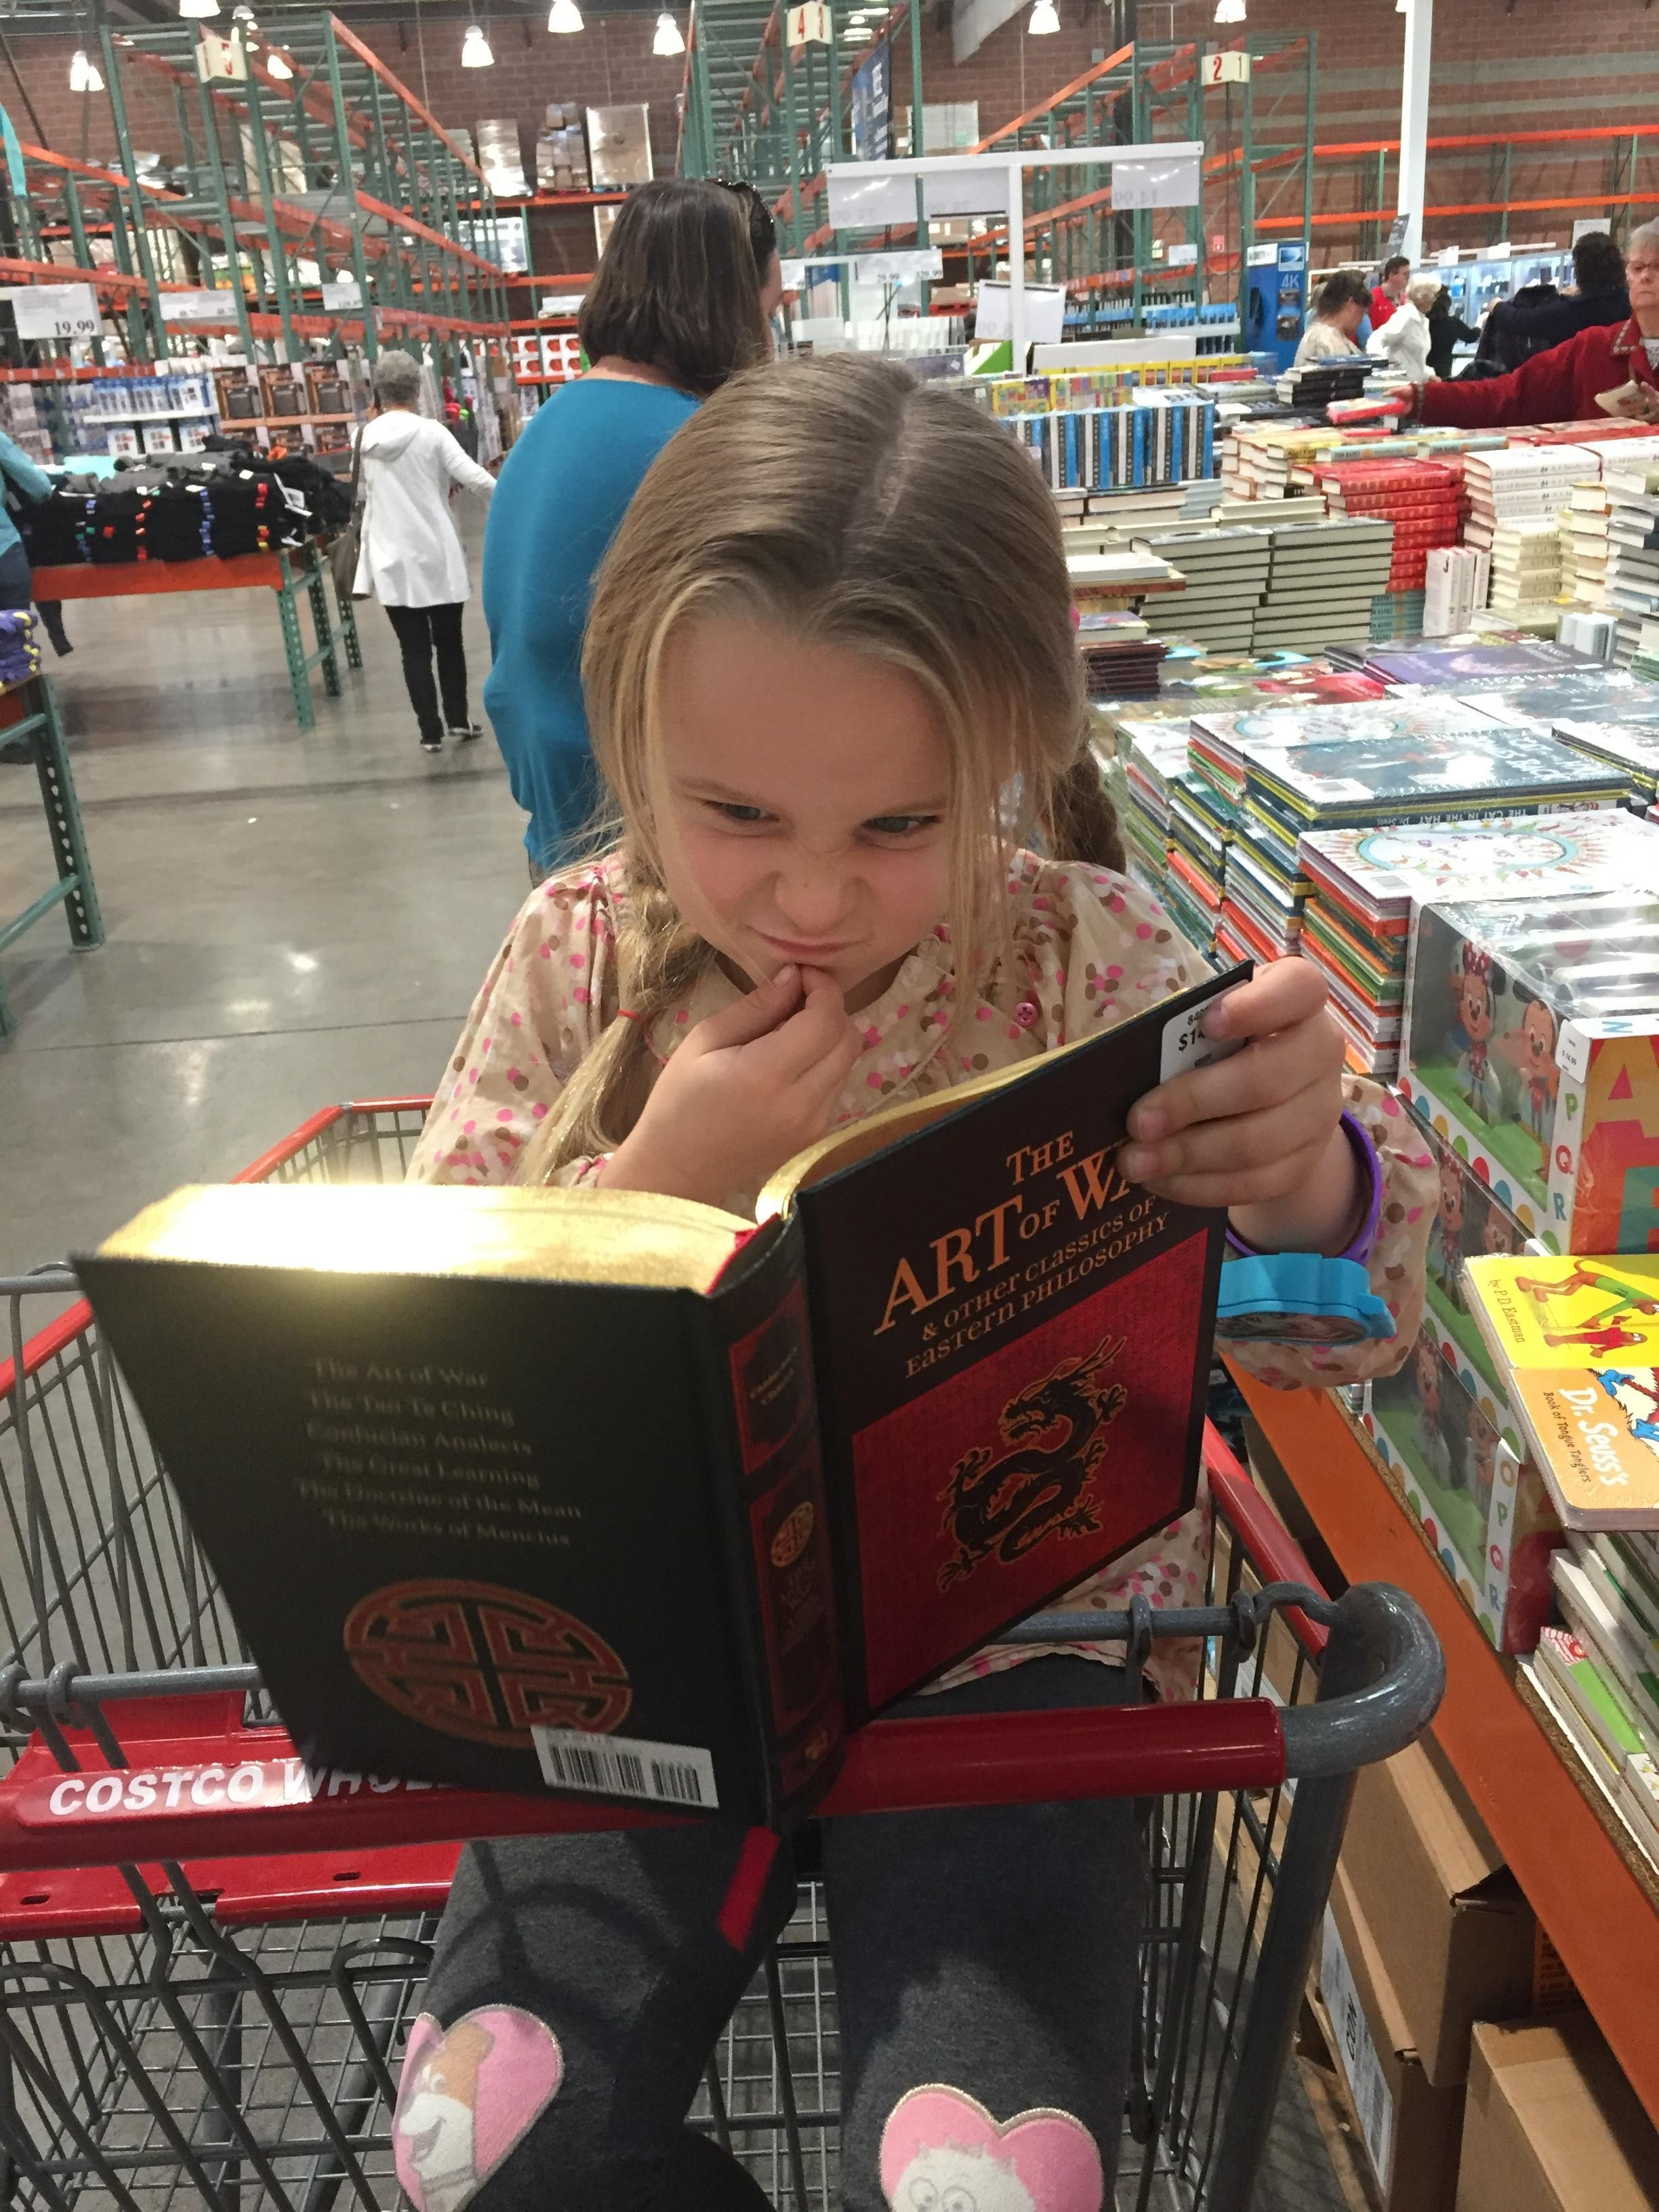 """I asked """"What book do you want?"""" She said """"Get me the one with the dragon on it!"""""""